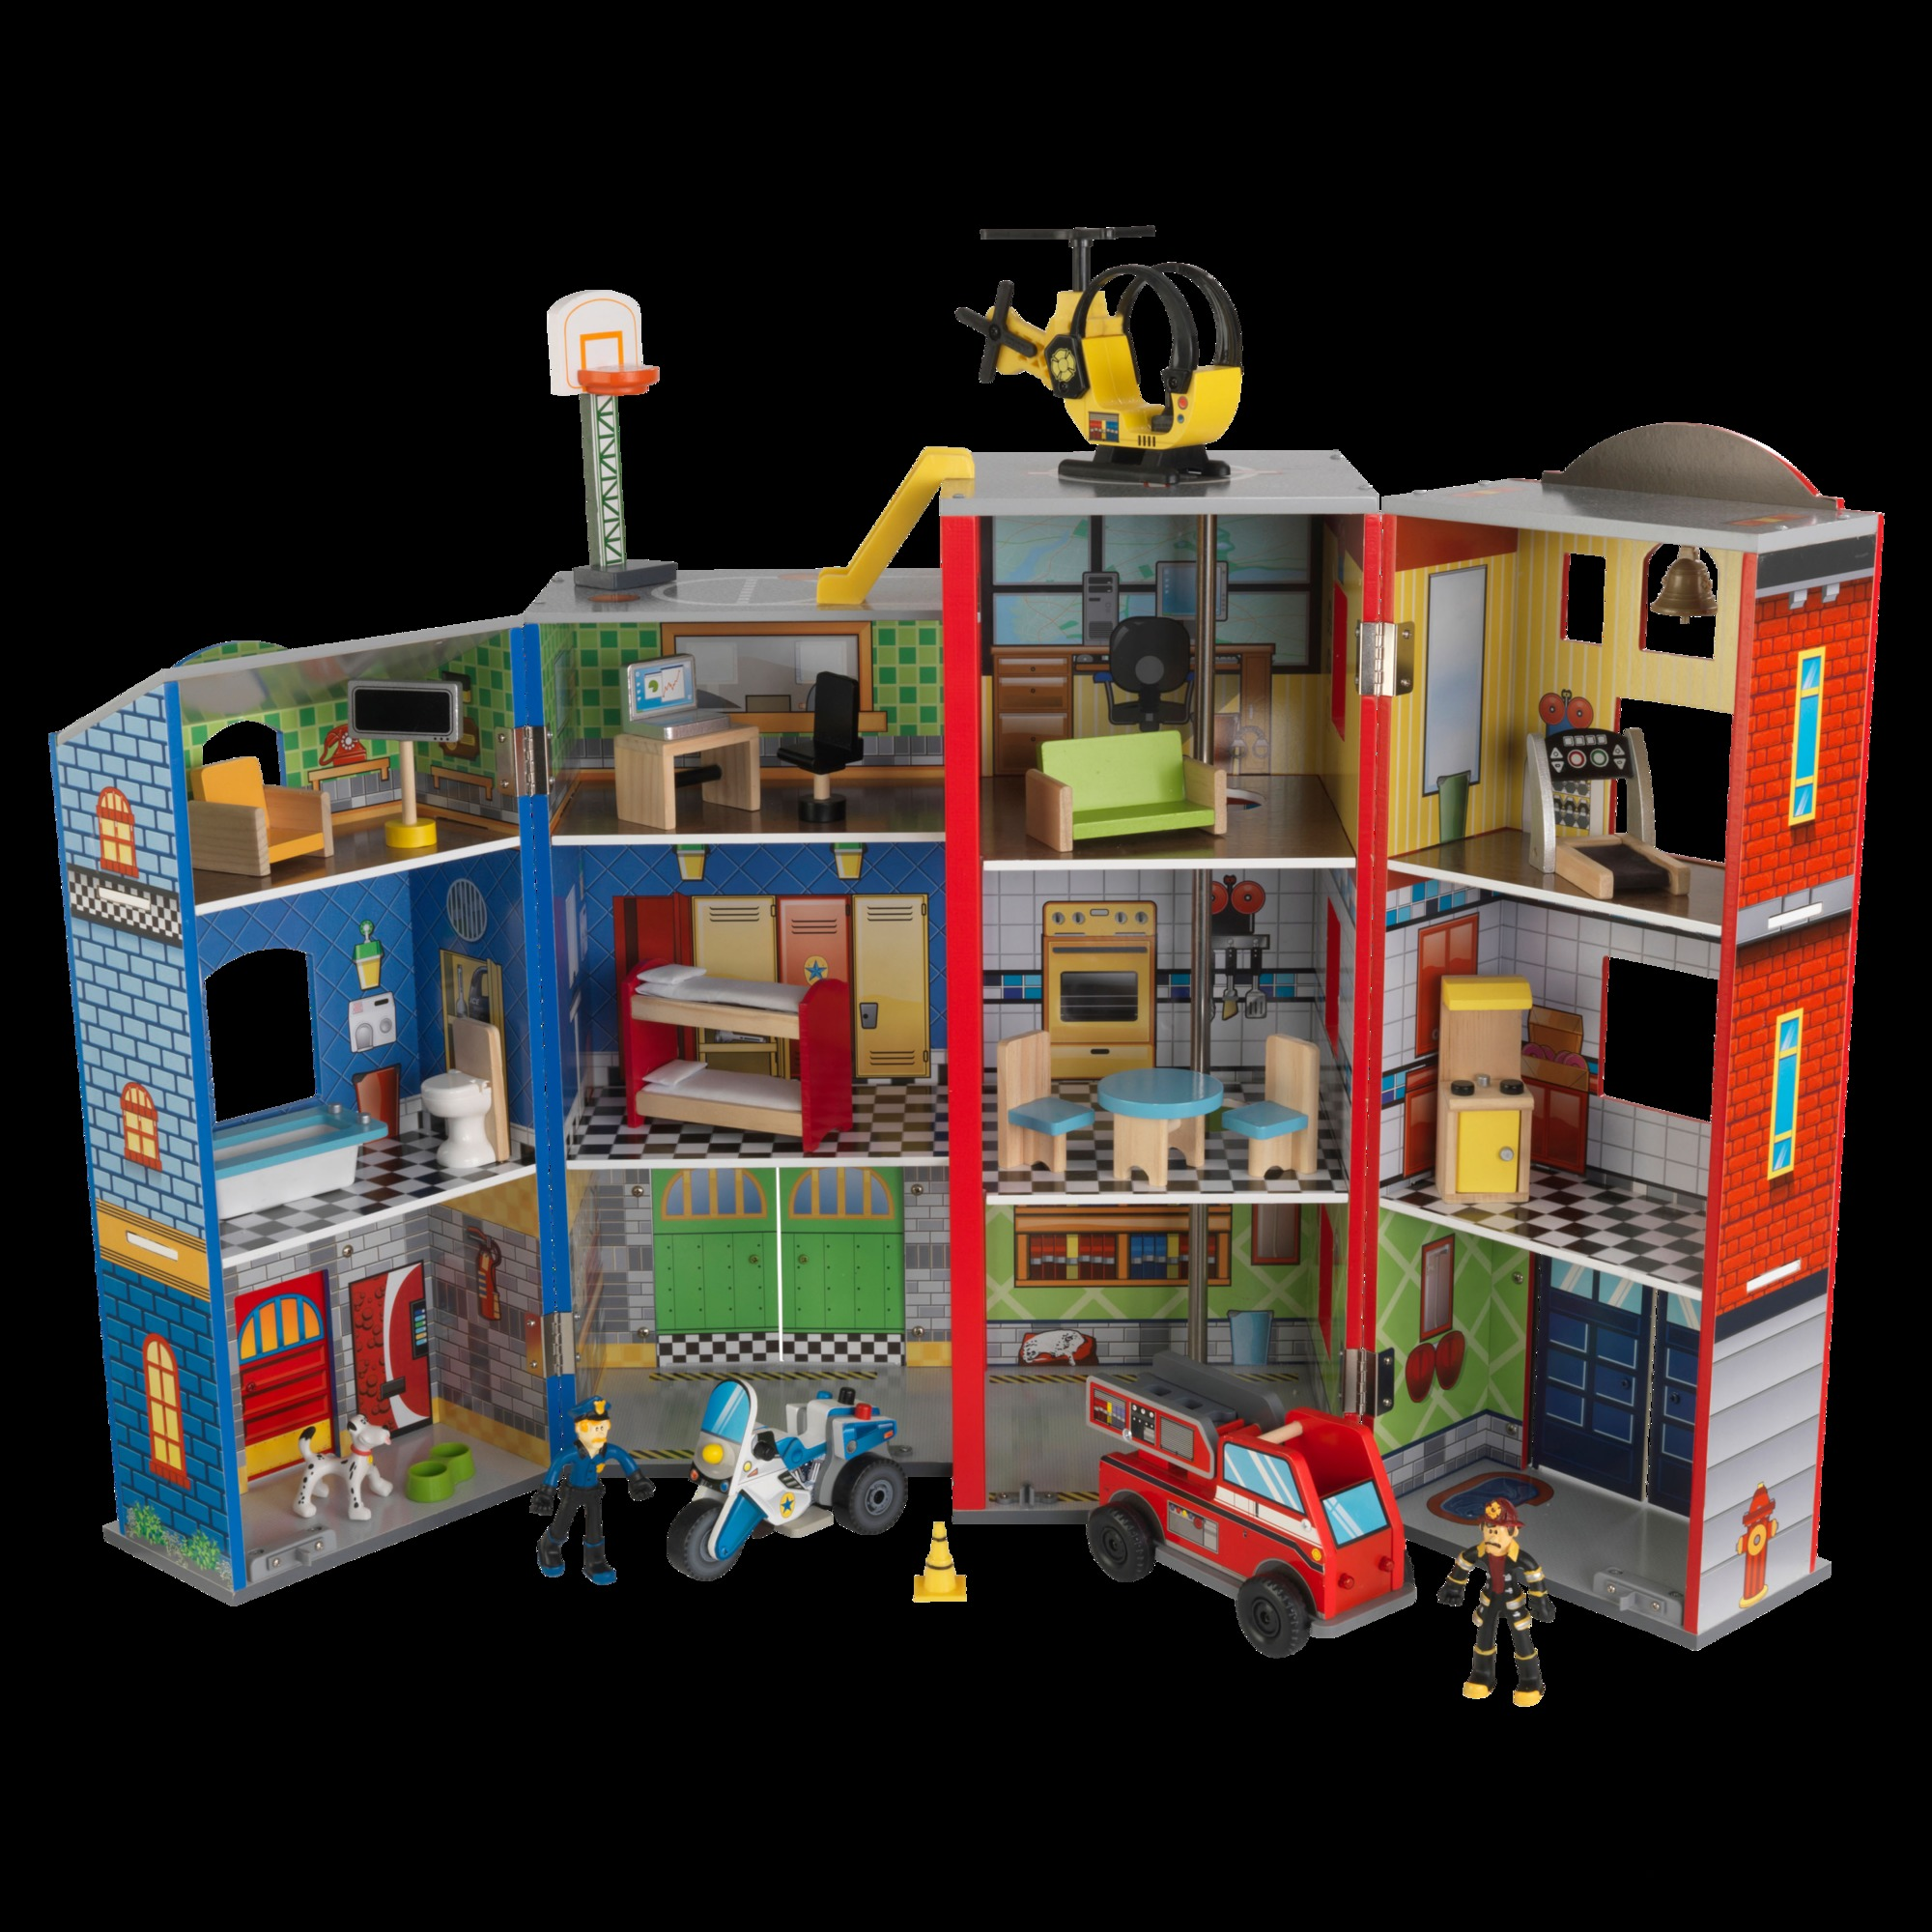 Details About New Everyday Heroes Police And Fire Station Wooden Play Set Kidkrafttoys